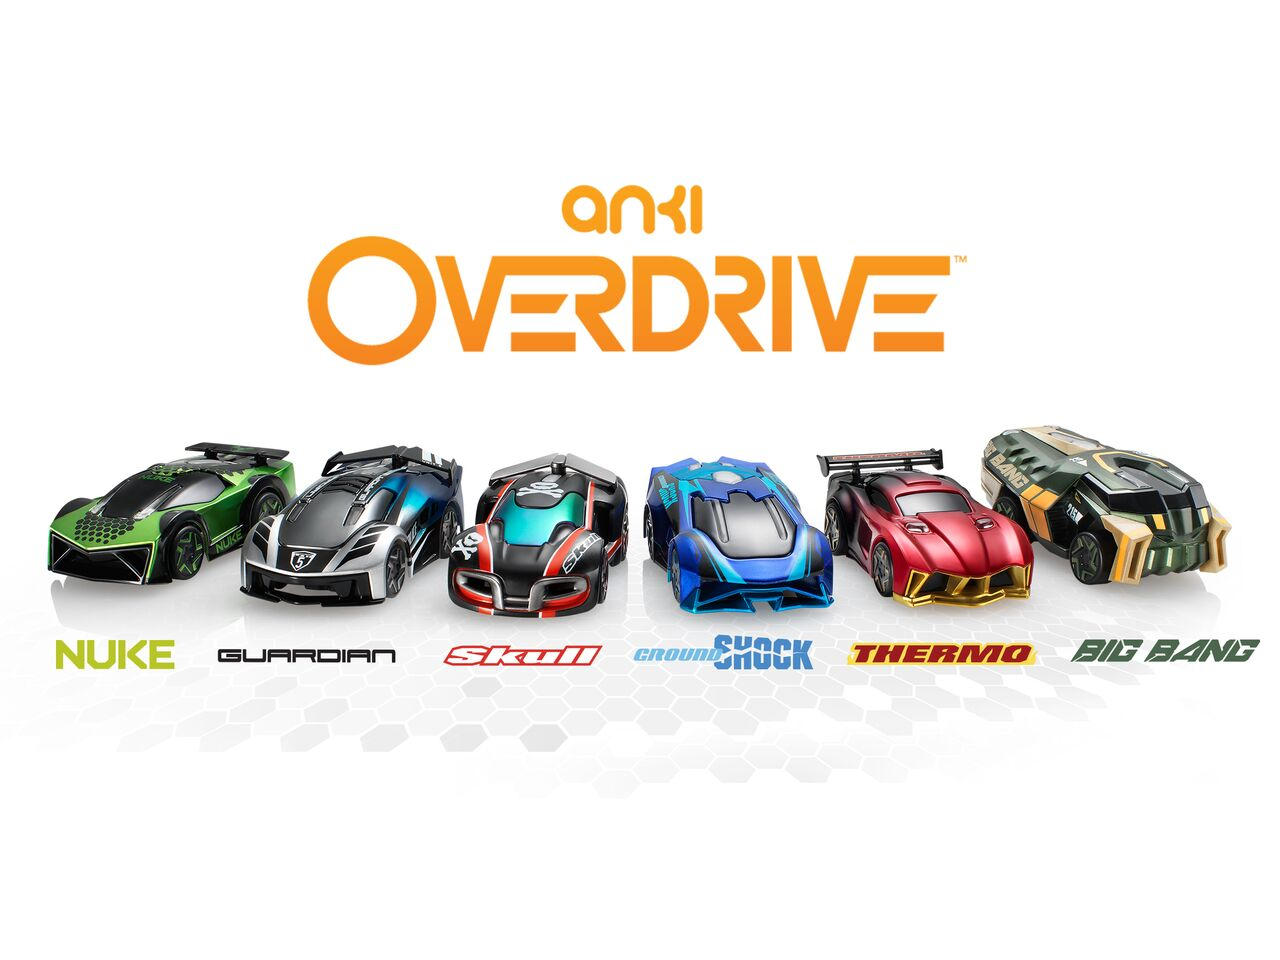 rc car tracks with Anki Overdrive Starterkit Und Extras Jetzt Verfuegbar Videos on 1700 0388 likewise Yes This Dudes Driving An Upside Down Camaro additionally M X0X L3X moreover The Harmony Electric Adjustable Speed Bullet Train Toy moreover Watch.